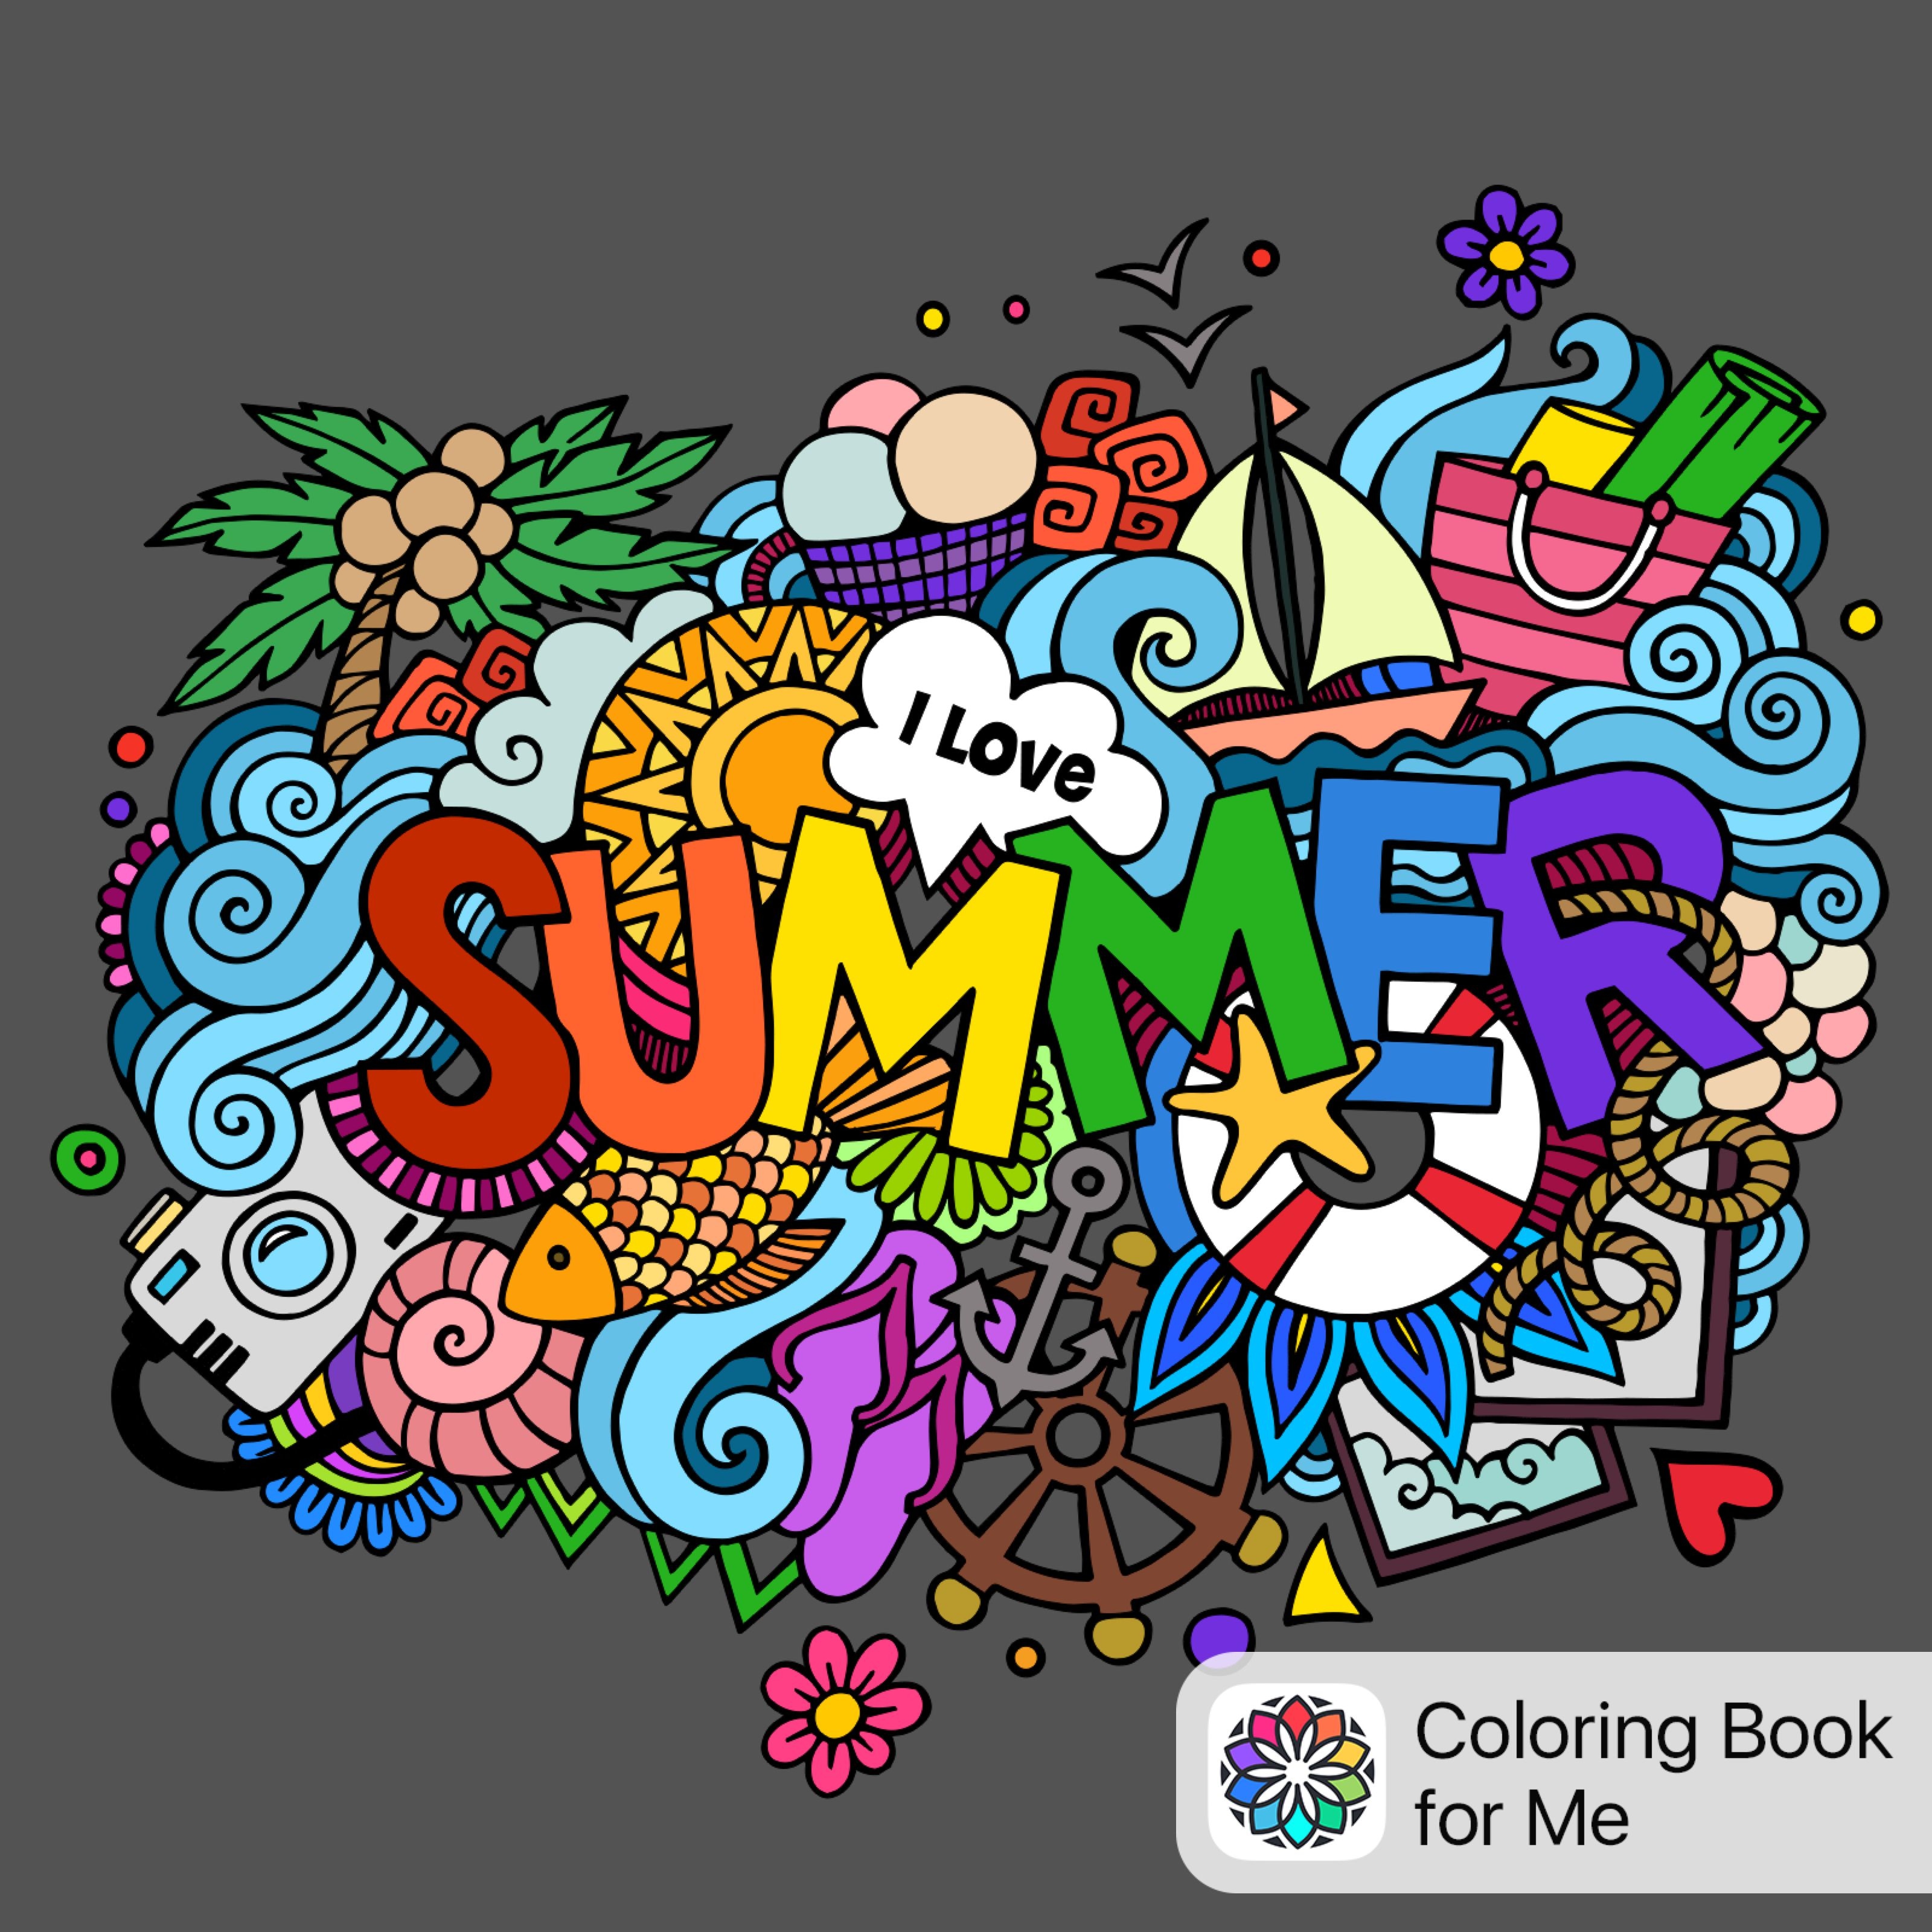 Colored With Coloring Book For Me Coloring Books Doodle Art Coloring Pages